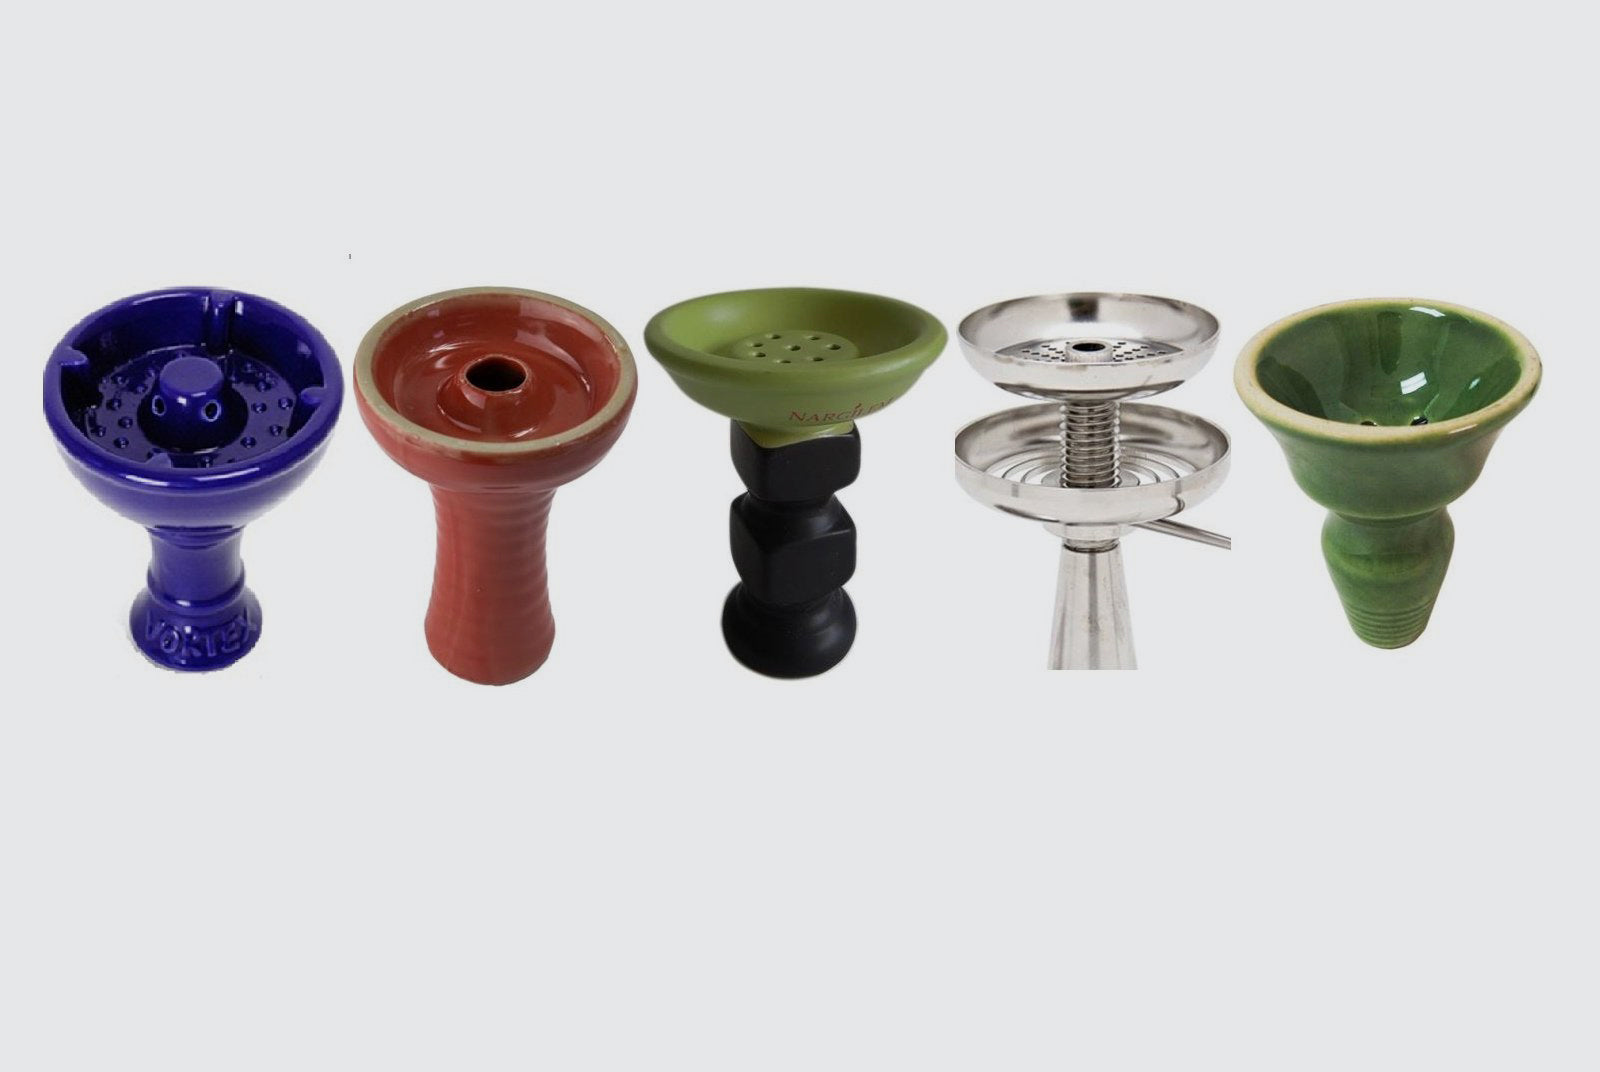 What is the best Shisha Bowl?